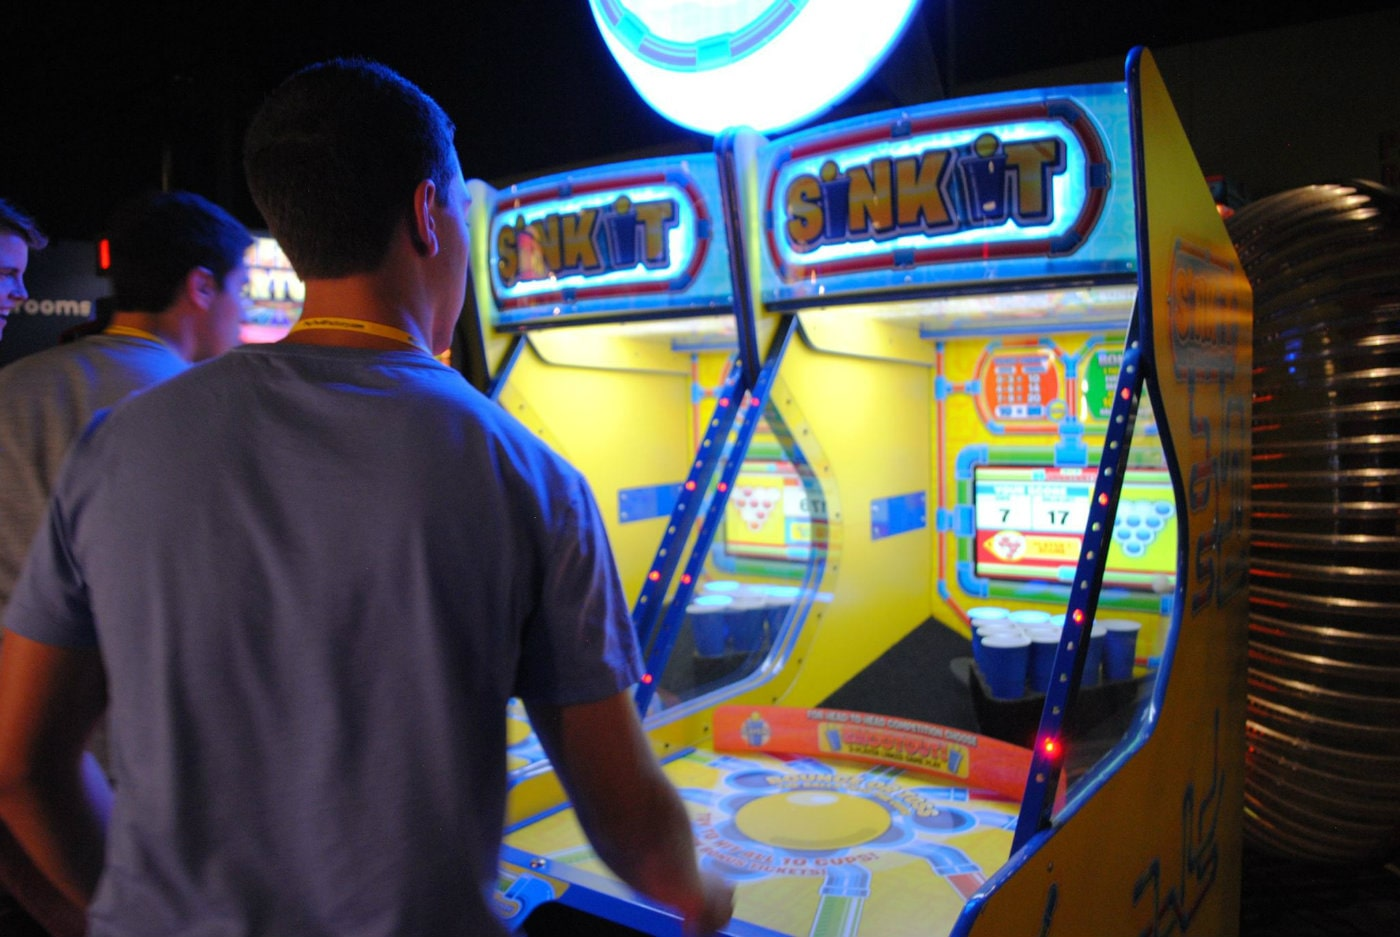 adult playing arcade game